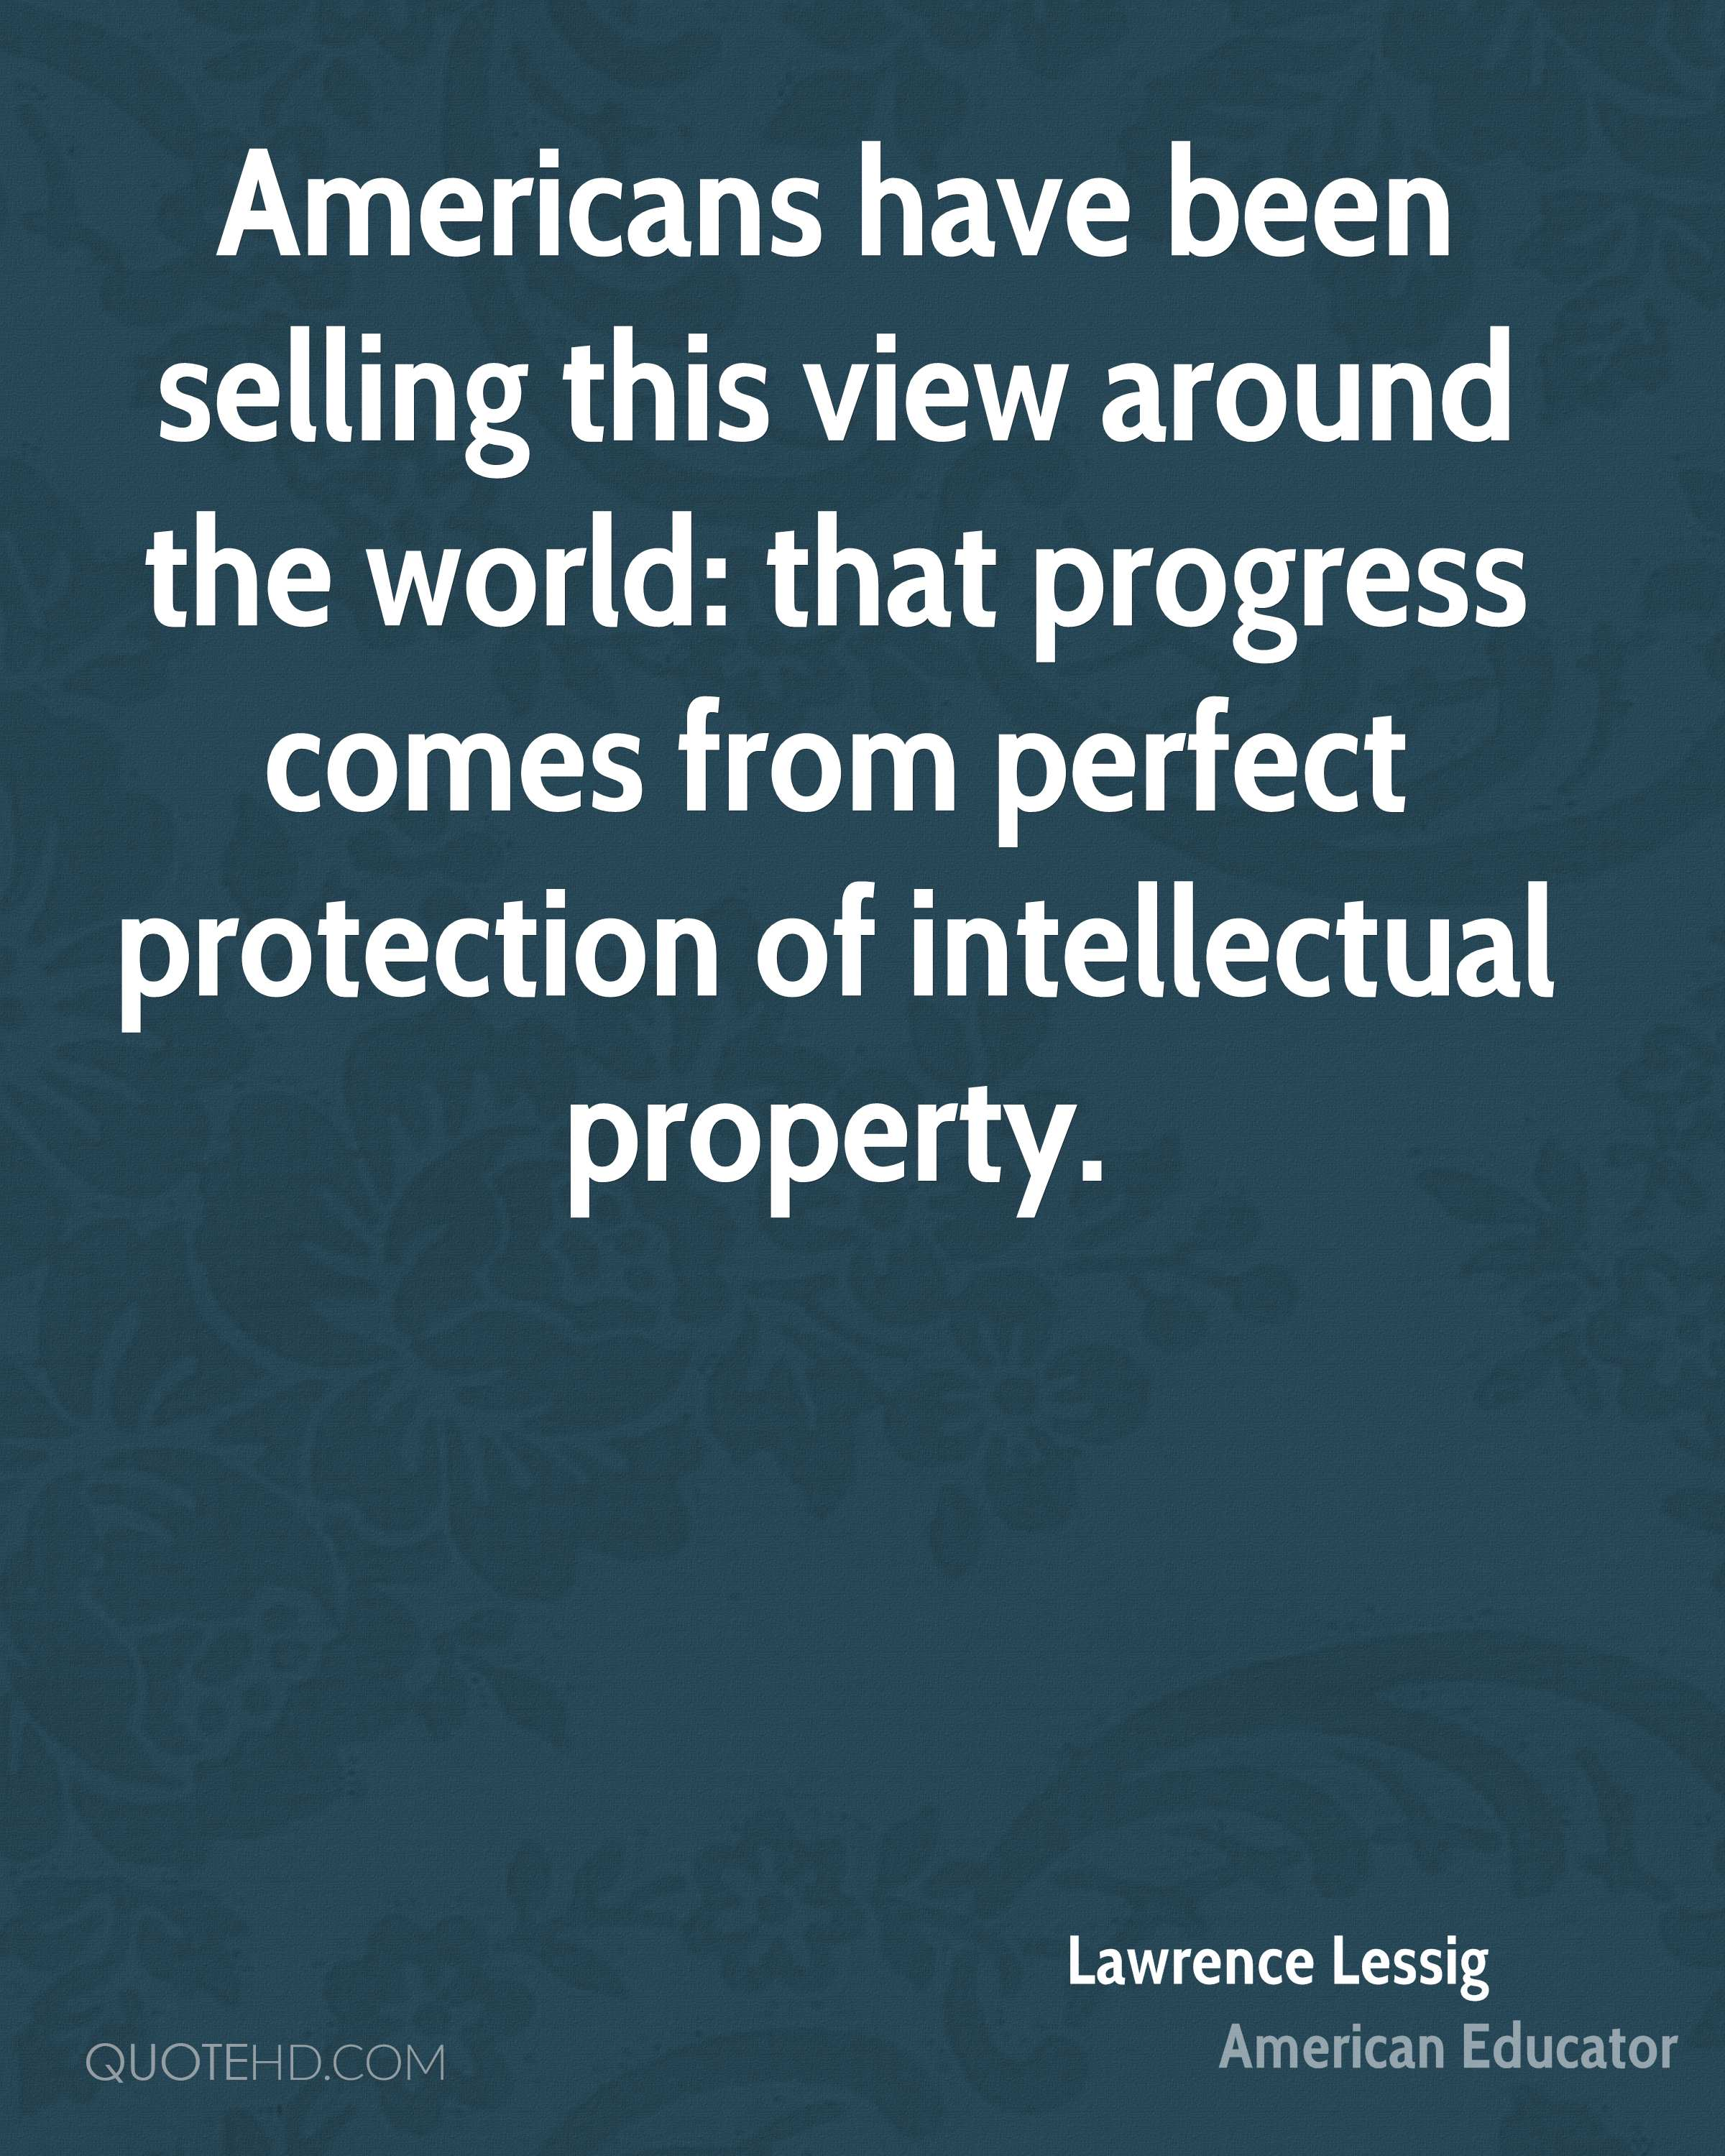 Americans have been selling this view around the world: that progress comes from perfect protection of intellectual property.